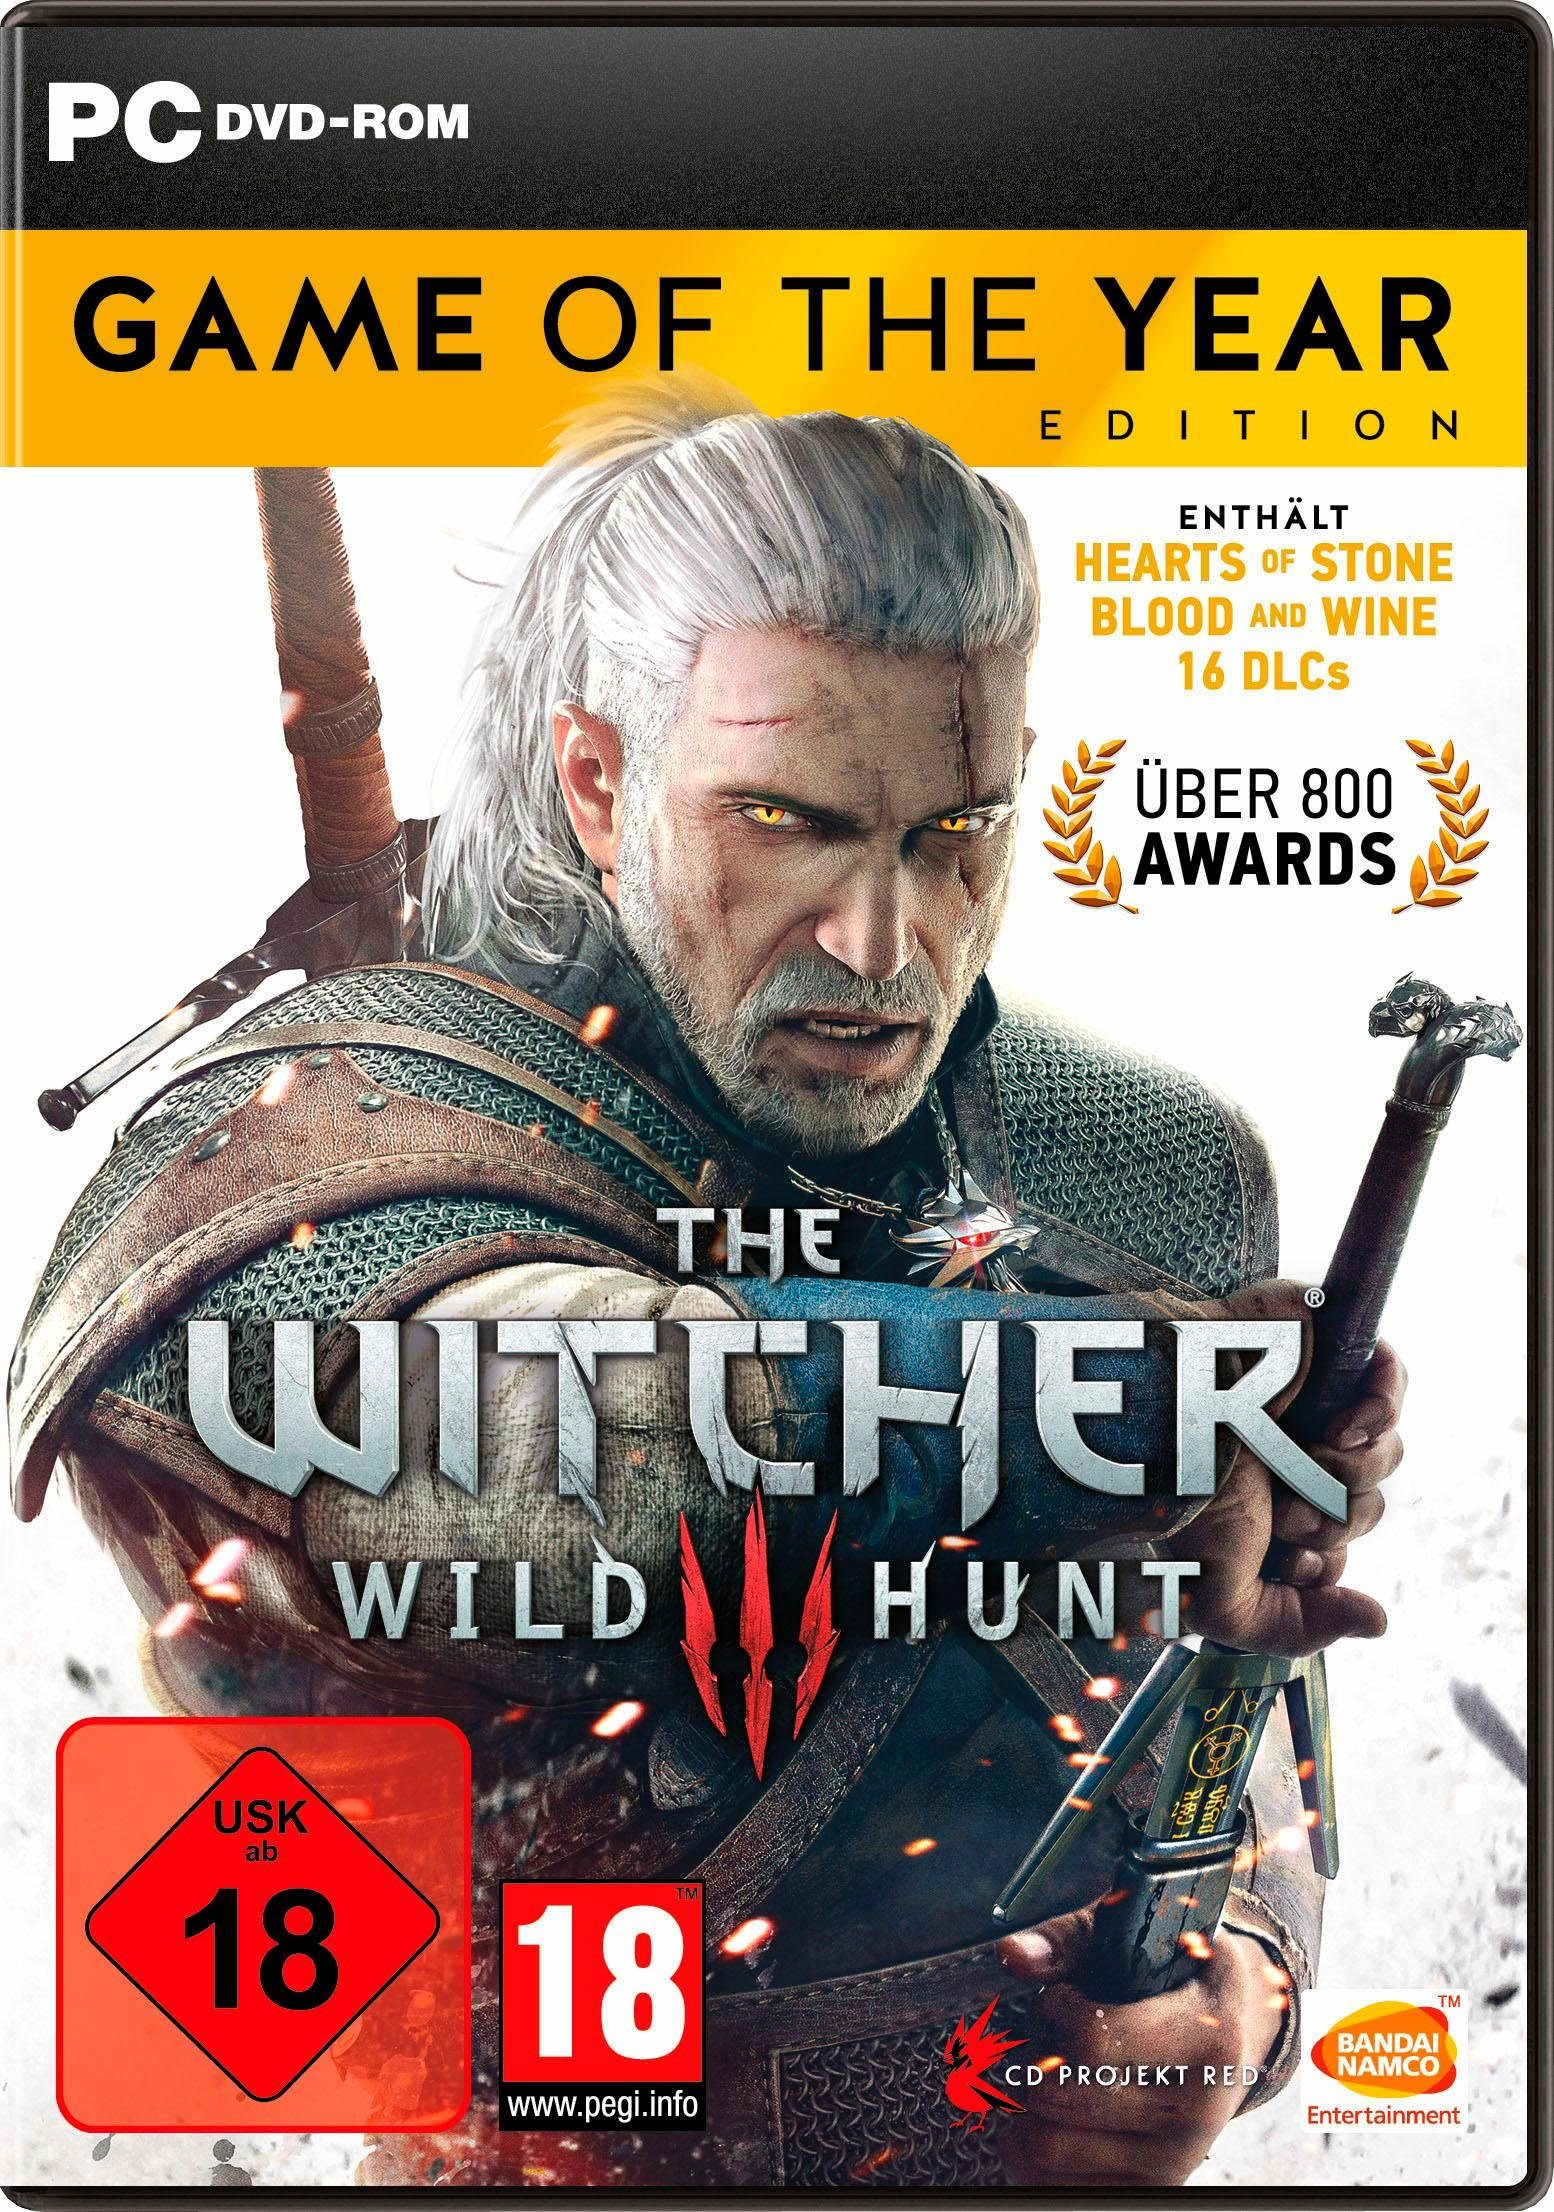 The Witcher3: Wild Hunt – Game of the Year Edition PC